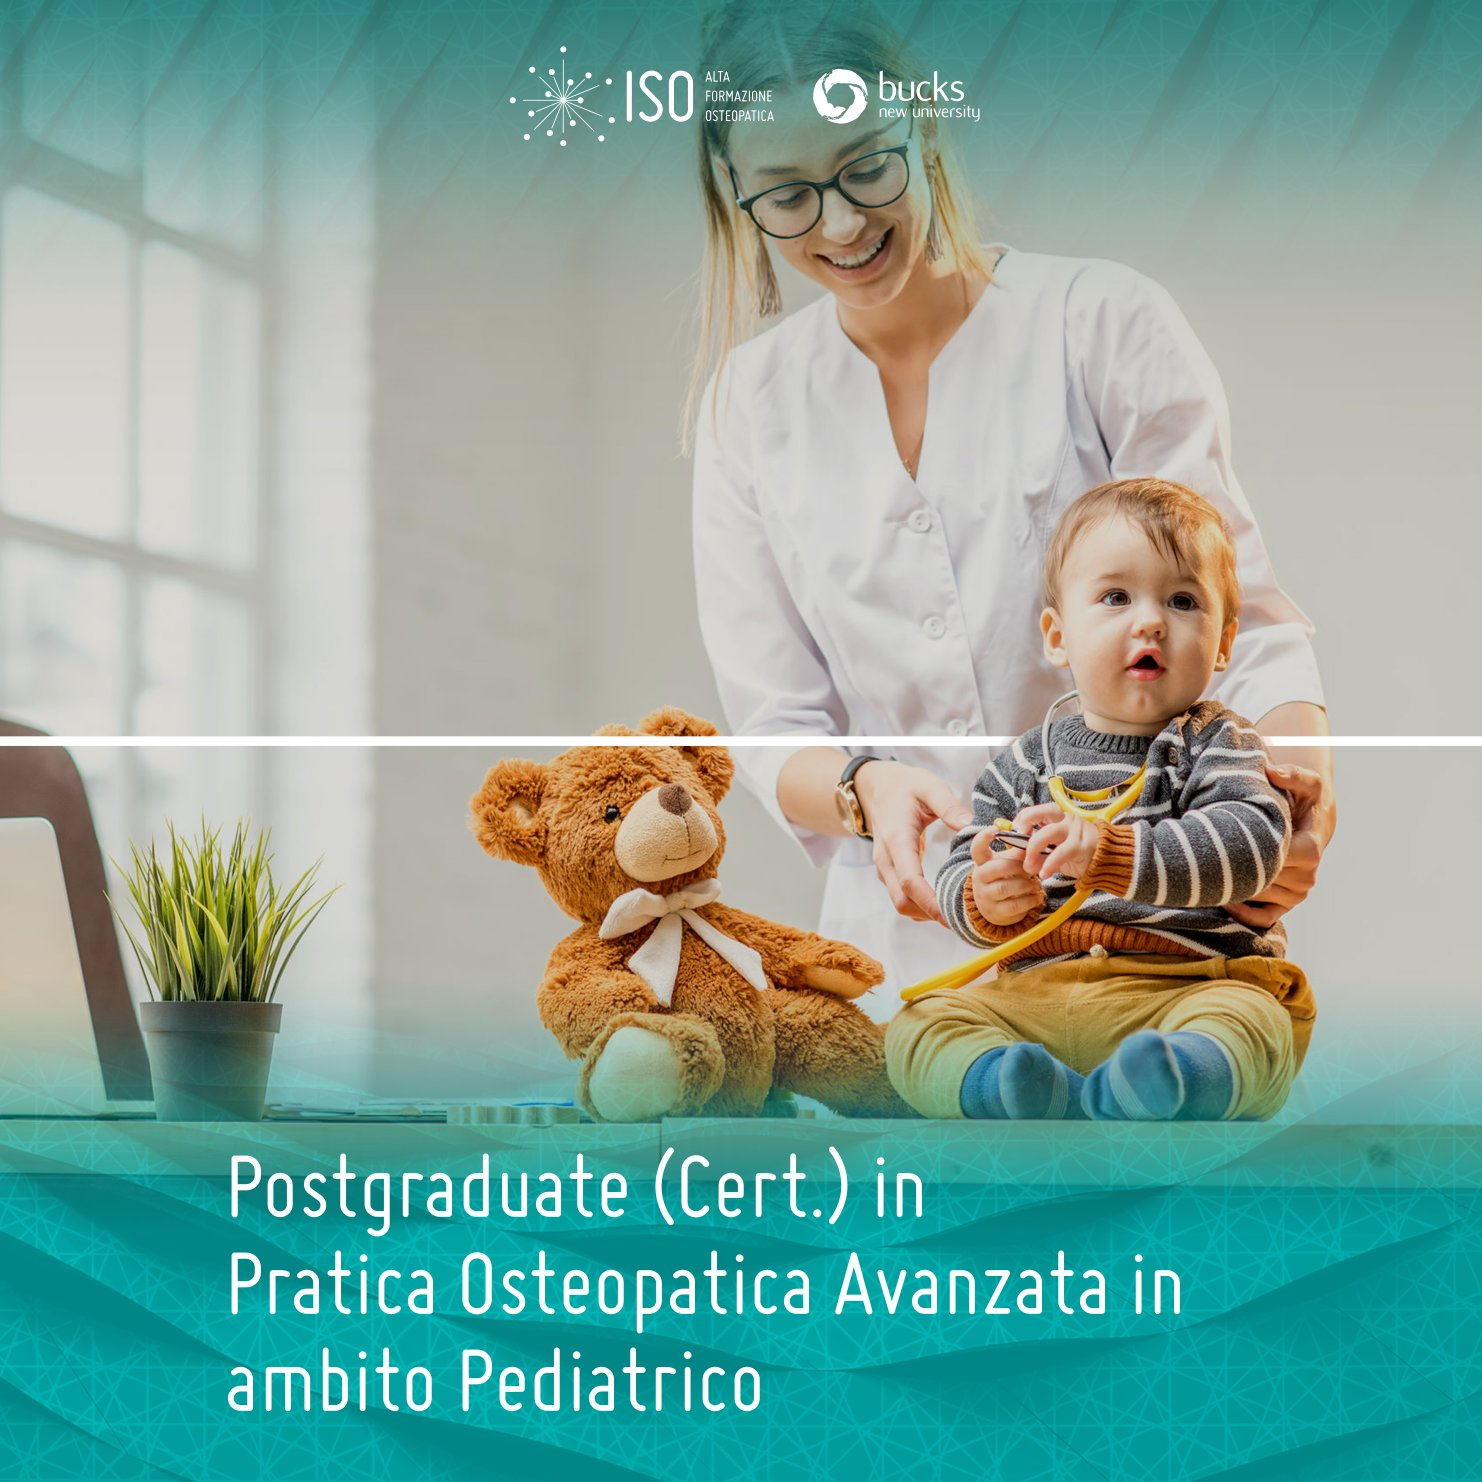 Postgraduate ISO in Pratica Osteopatica Avanzata in ambito Pediatrico